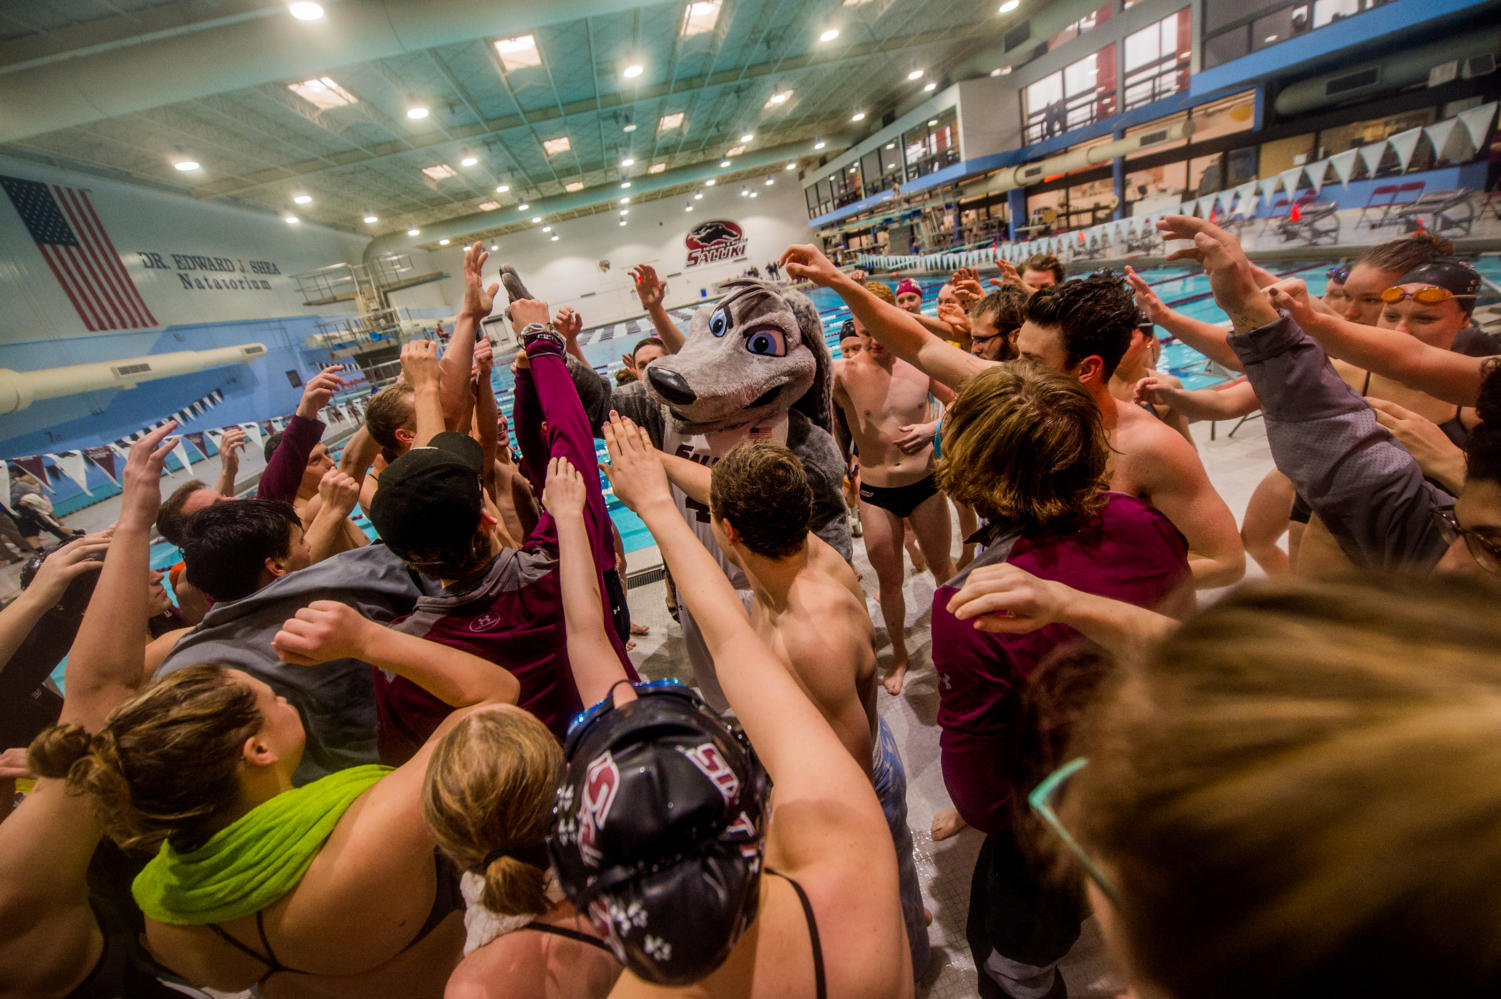 Grey Dawg and the SIU Swim and Diving team hype up  Saturday, Jan. 27, 2018, before the Salukis' meet against the Indiana State Sycamores at the Edward J. Shea Natatorium in the recreation center. (Brian Munoz | @BrianMMunoz)